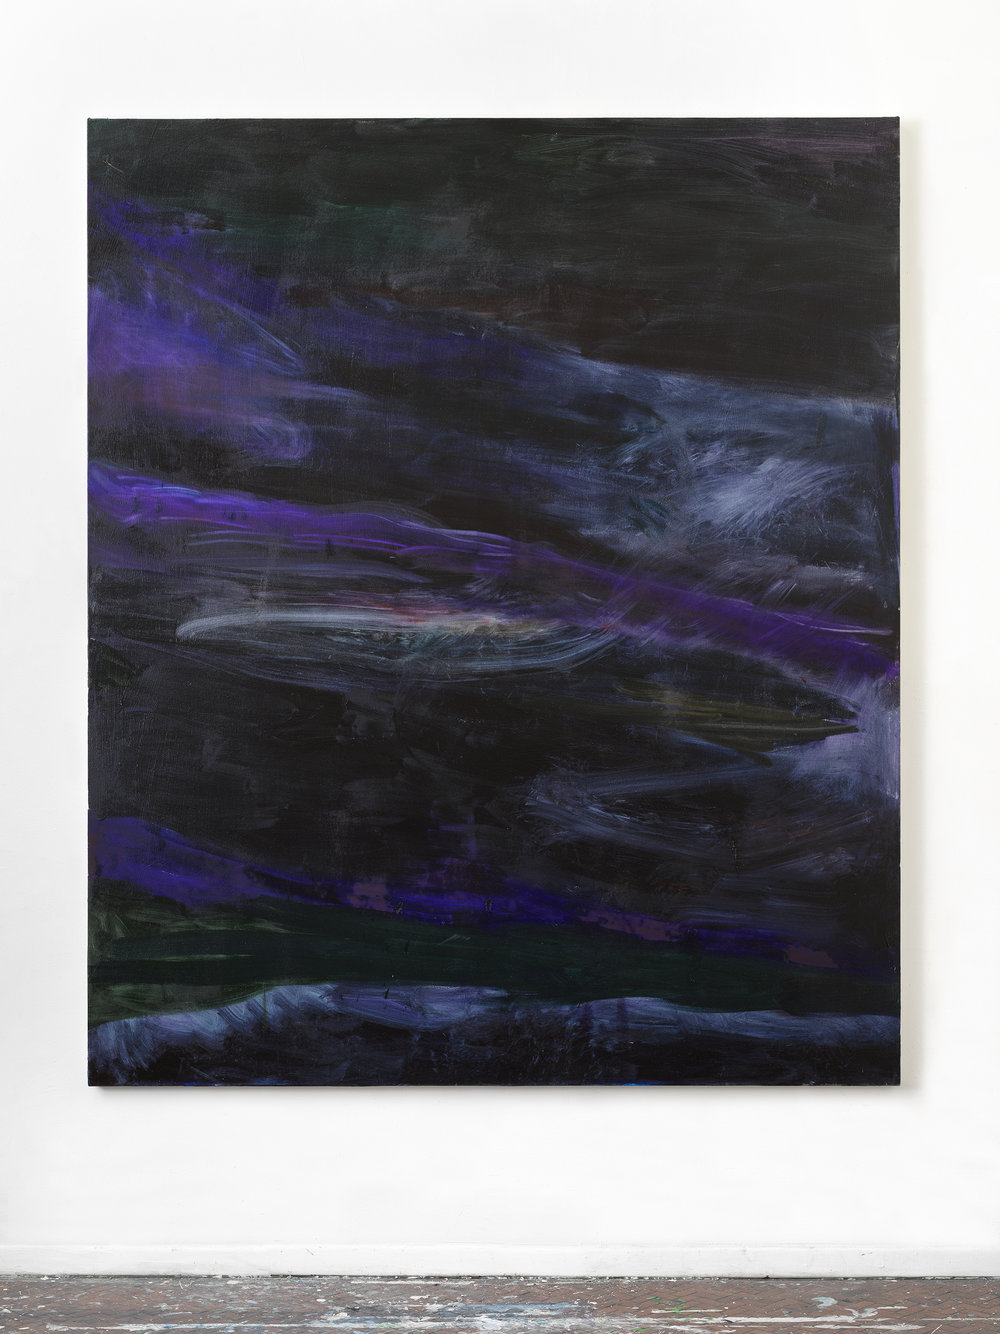 Untitled #Bb , 2018 73 x 61 inches, Oil on canvas